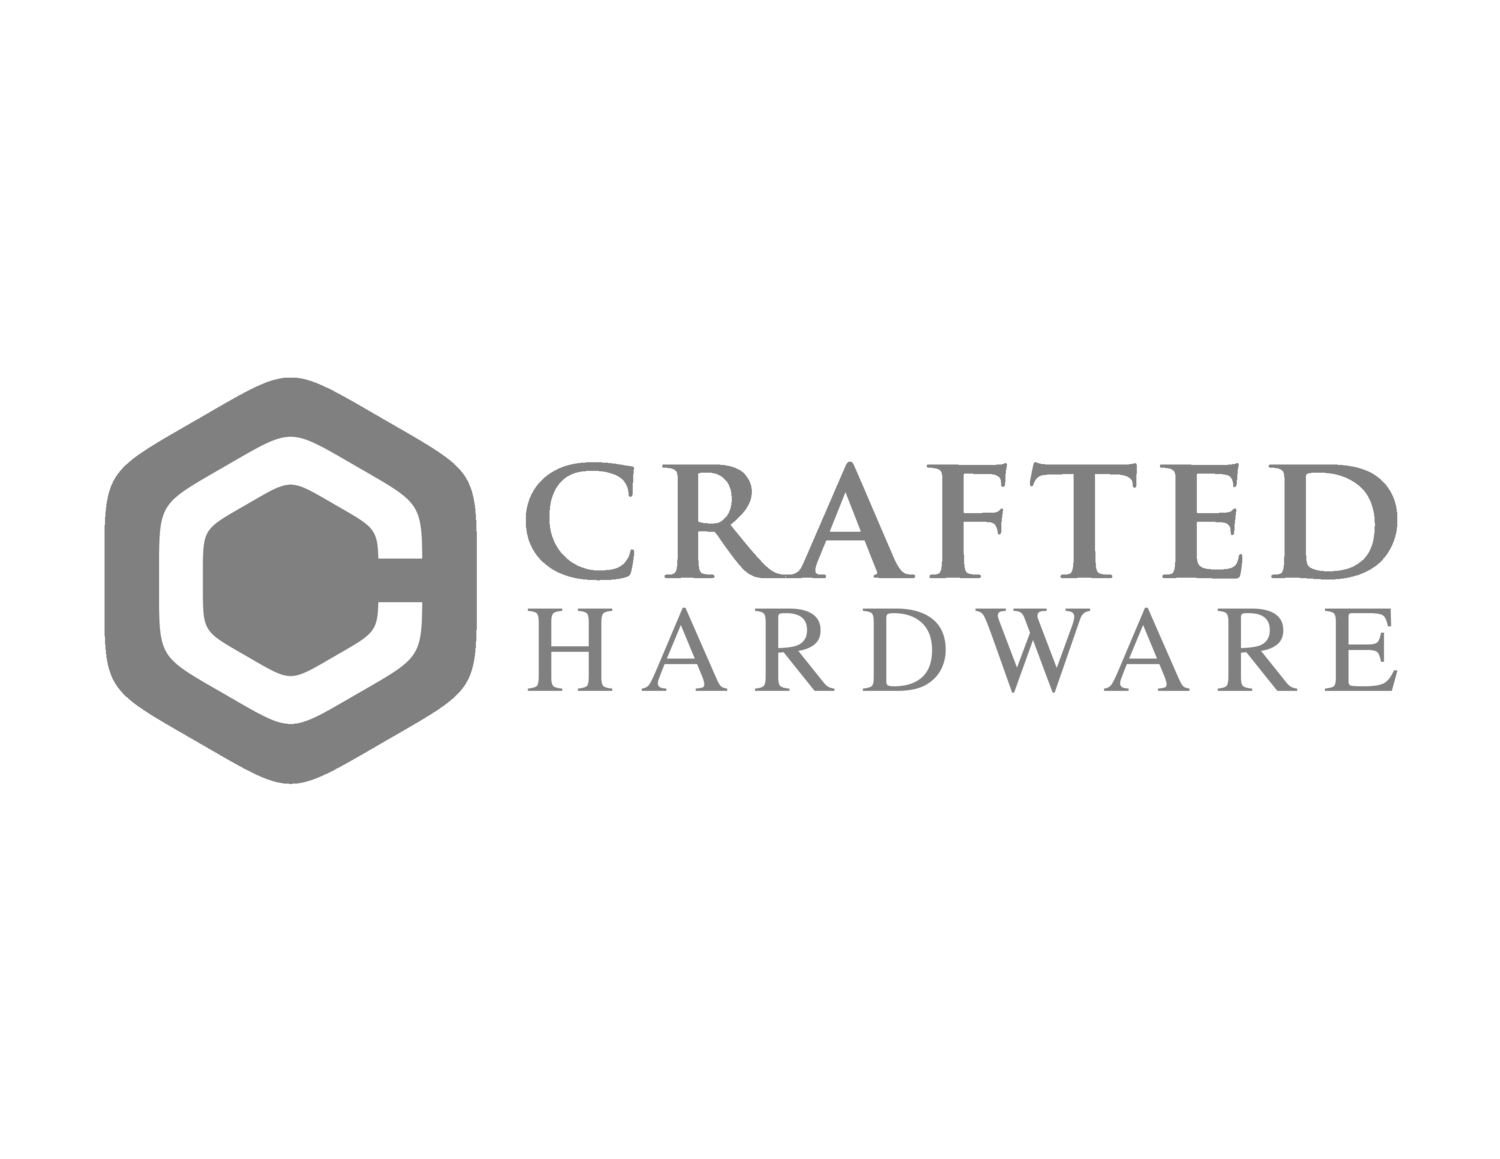 CRAFTED HARDWARE, LLC